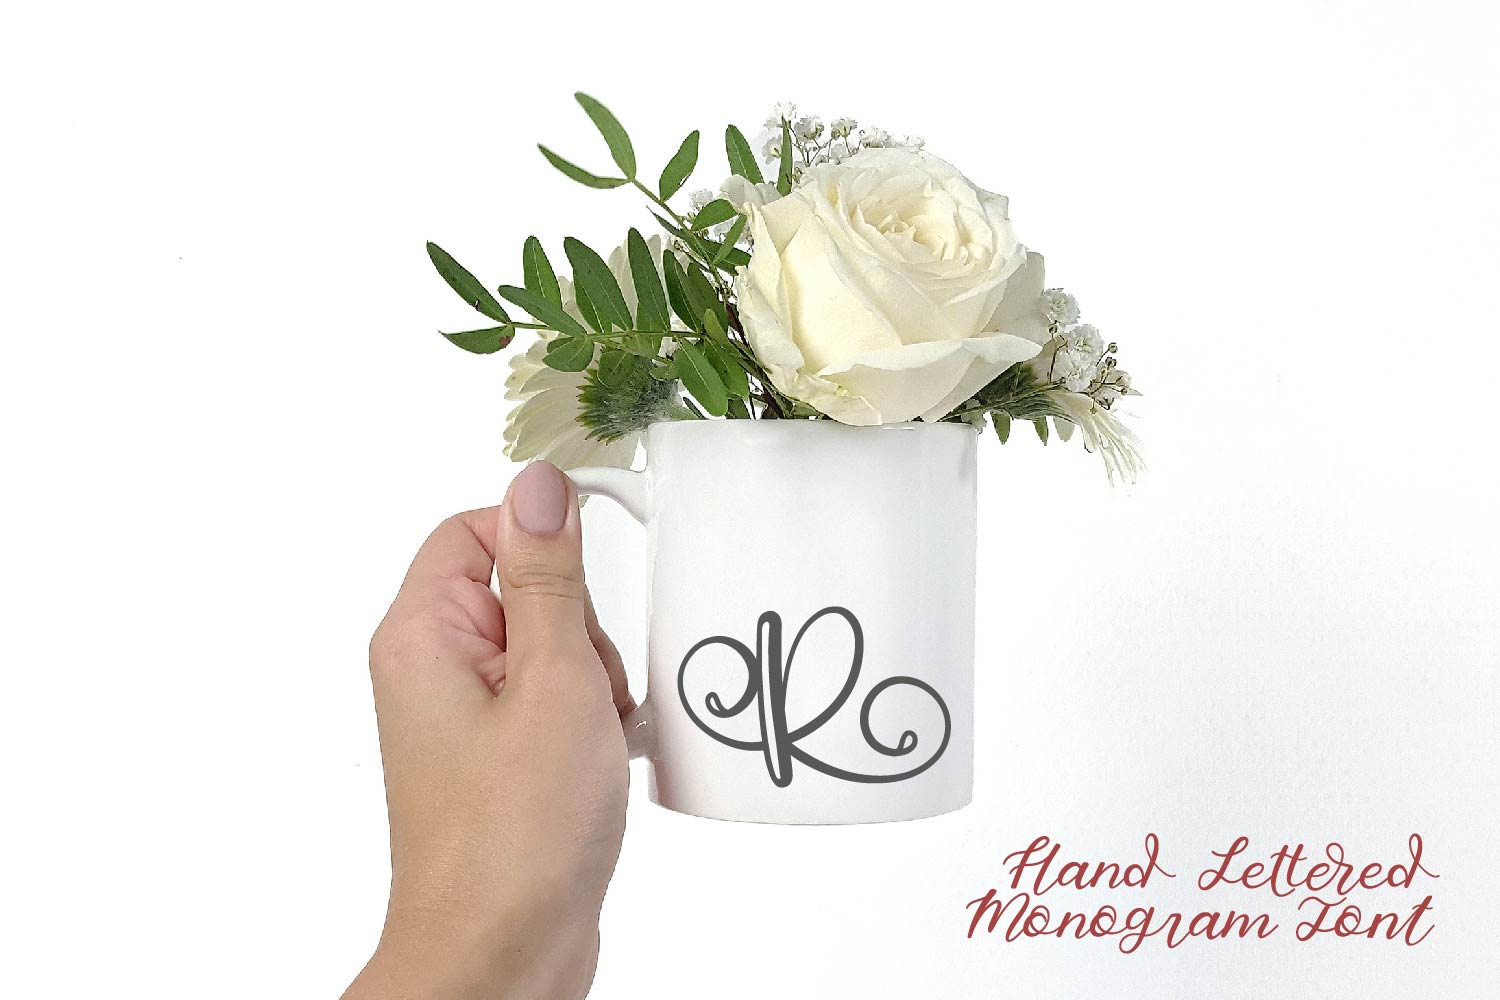 Hand Lettered Monogram Font - Perfect For Personalization! example image 5